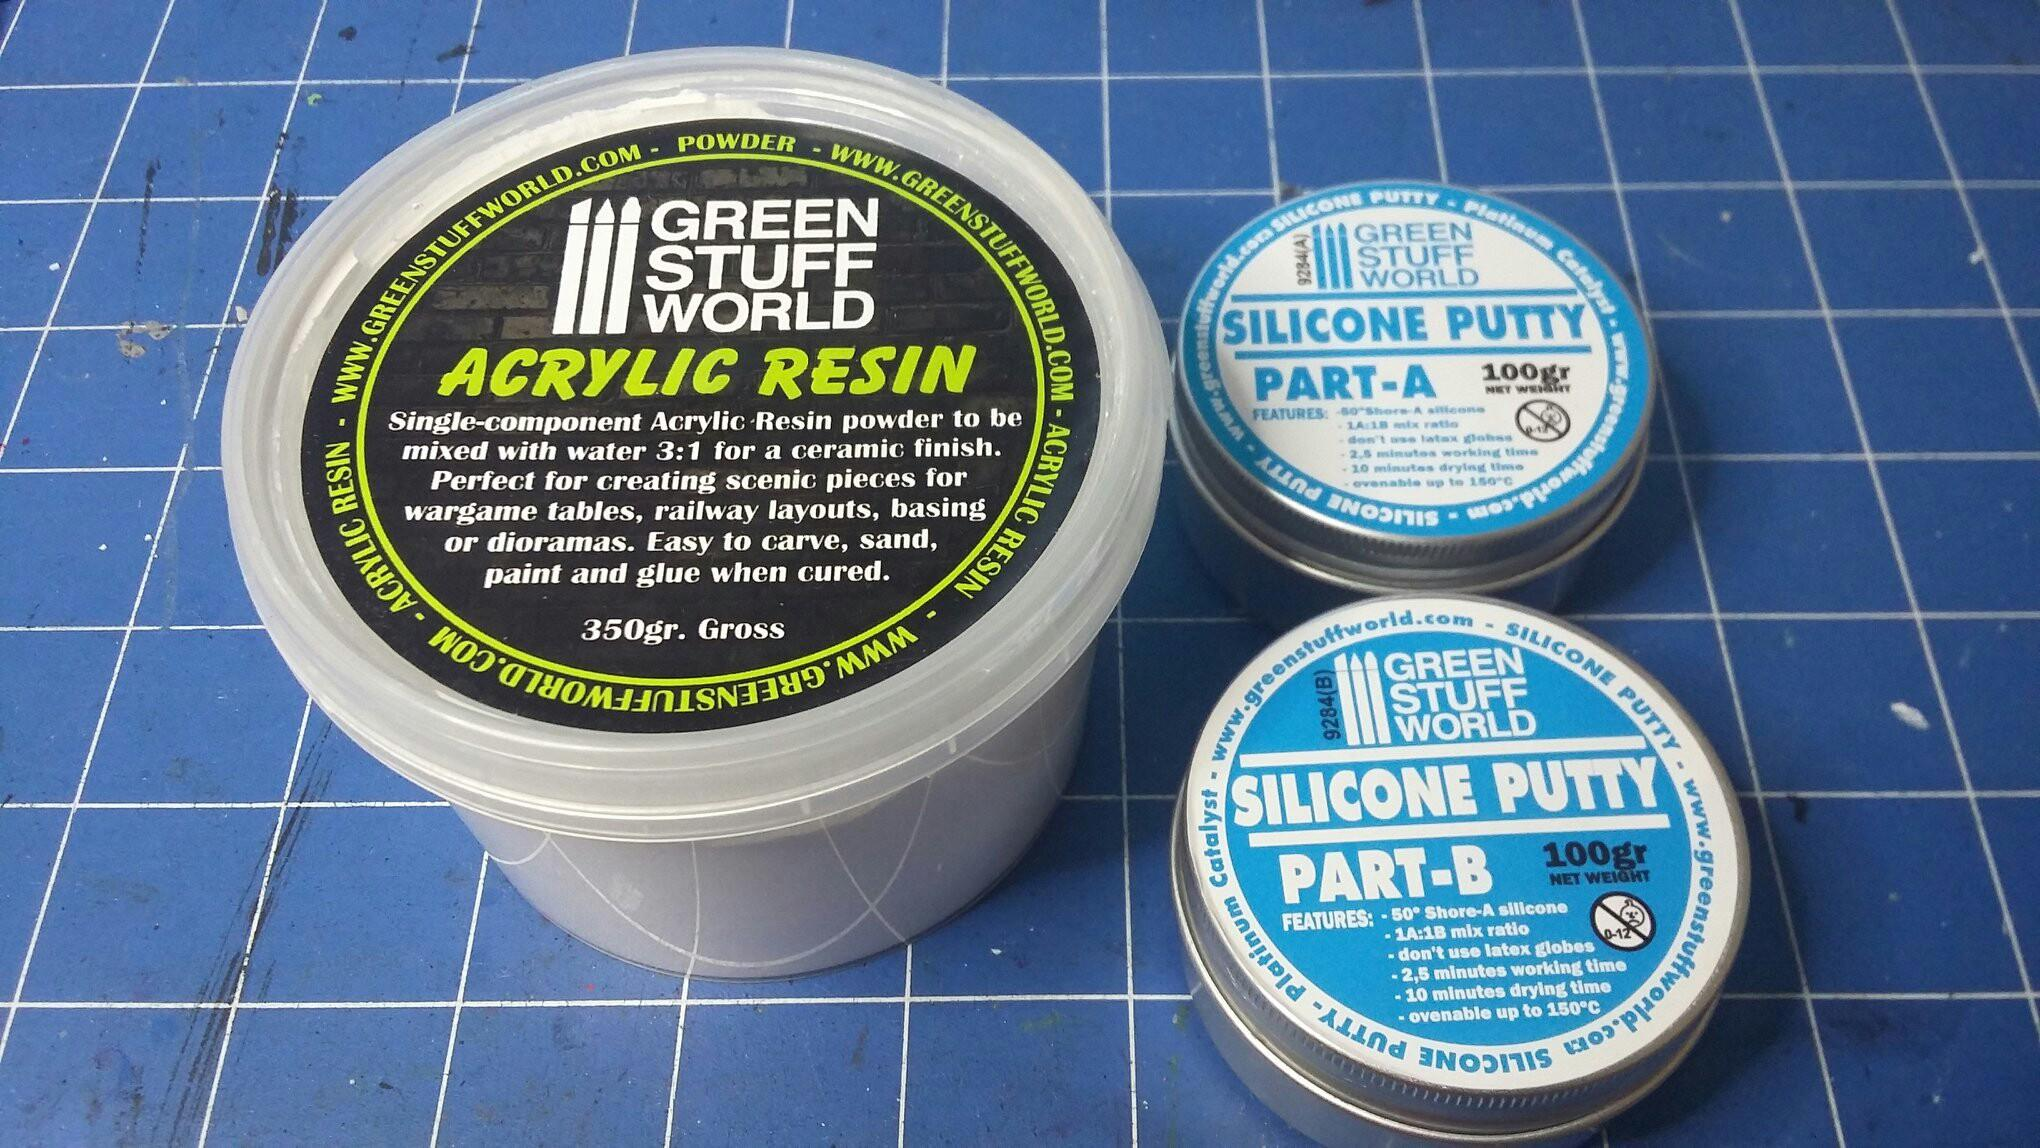 Acrylic, Casting, Greenstuff, Mould, Part, Putty, Resin, Silicone, Two, World